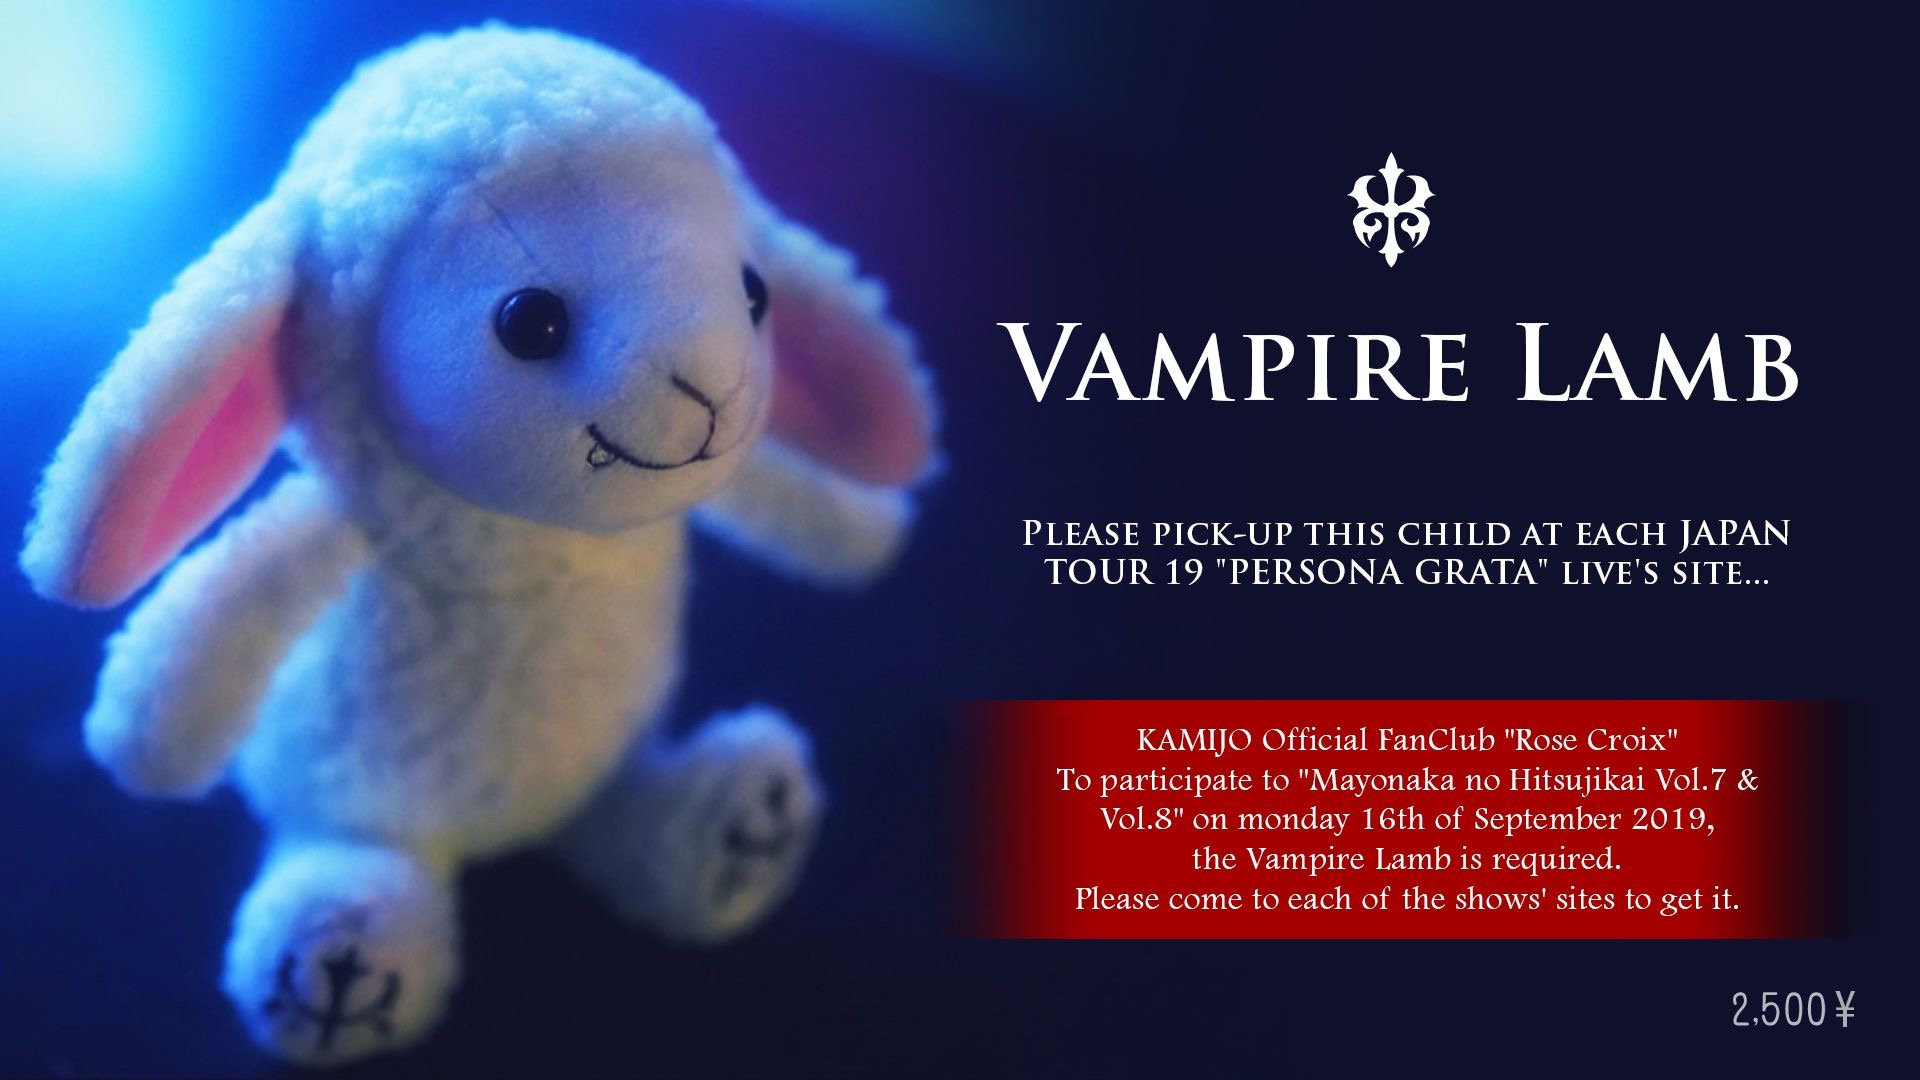 VAMPIRE LAMB, fanclub news